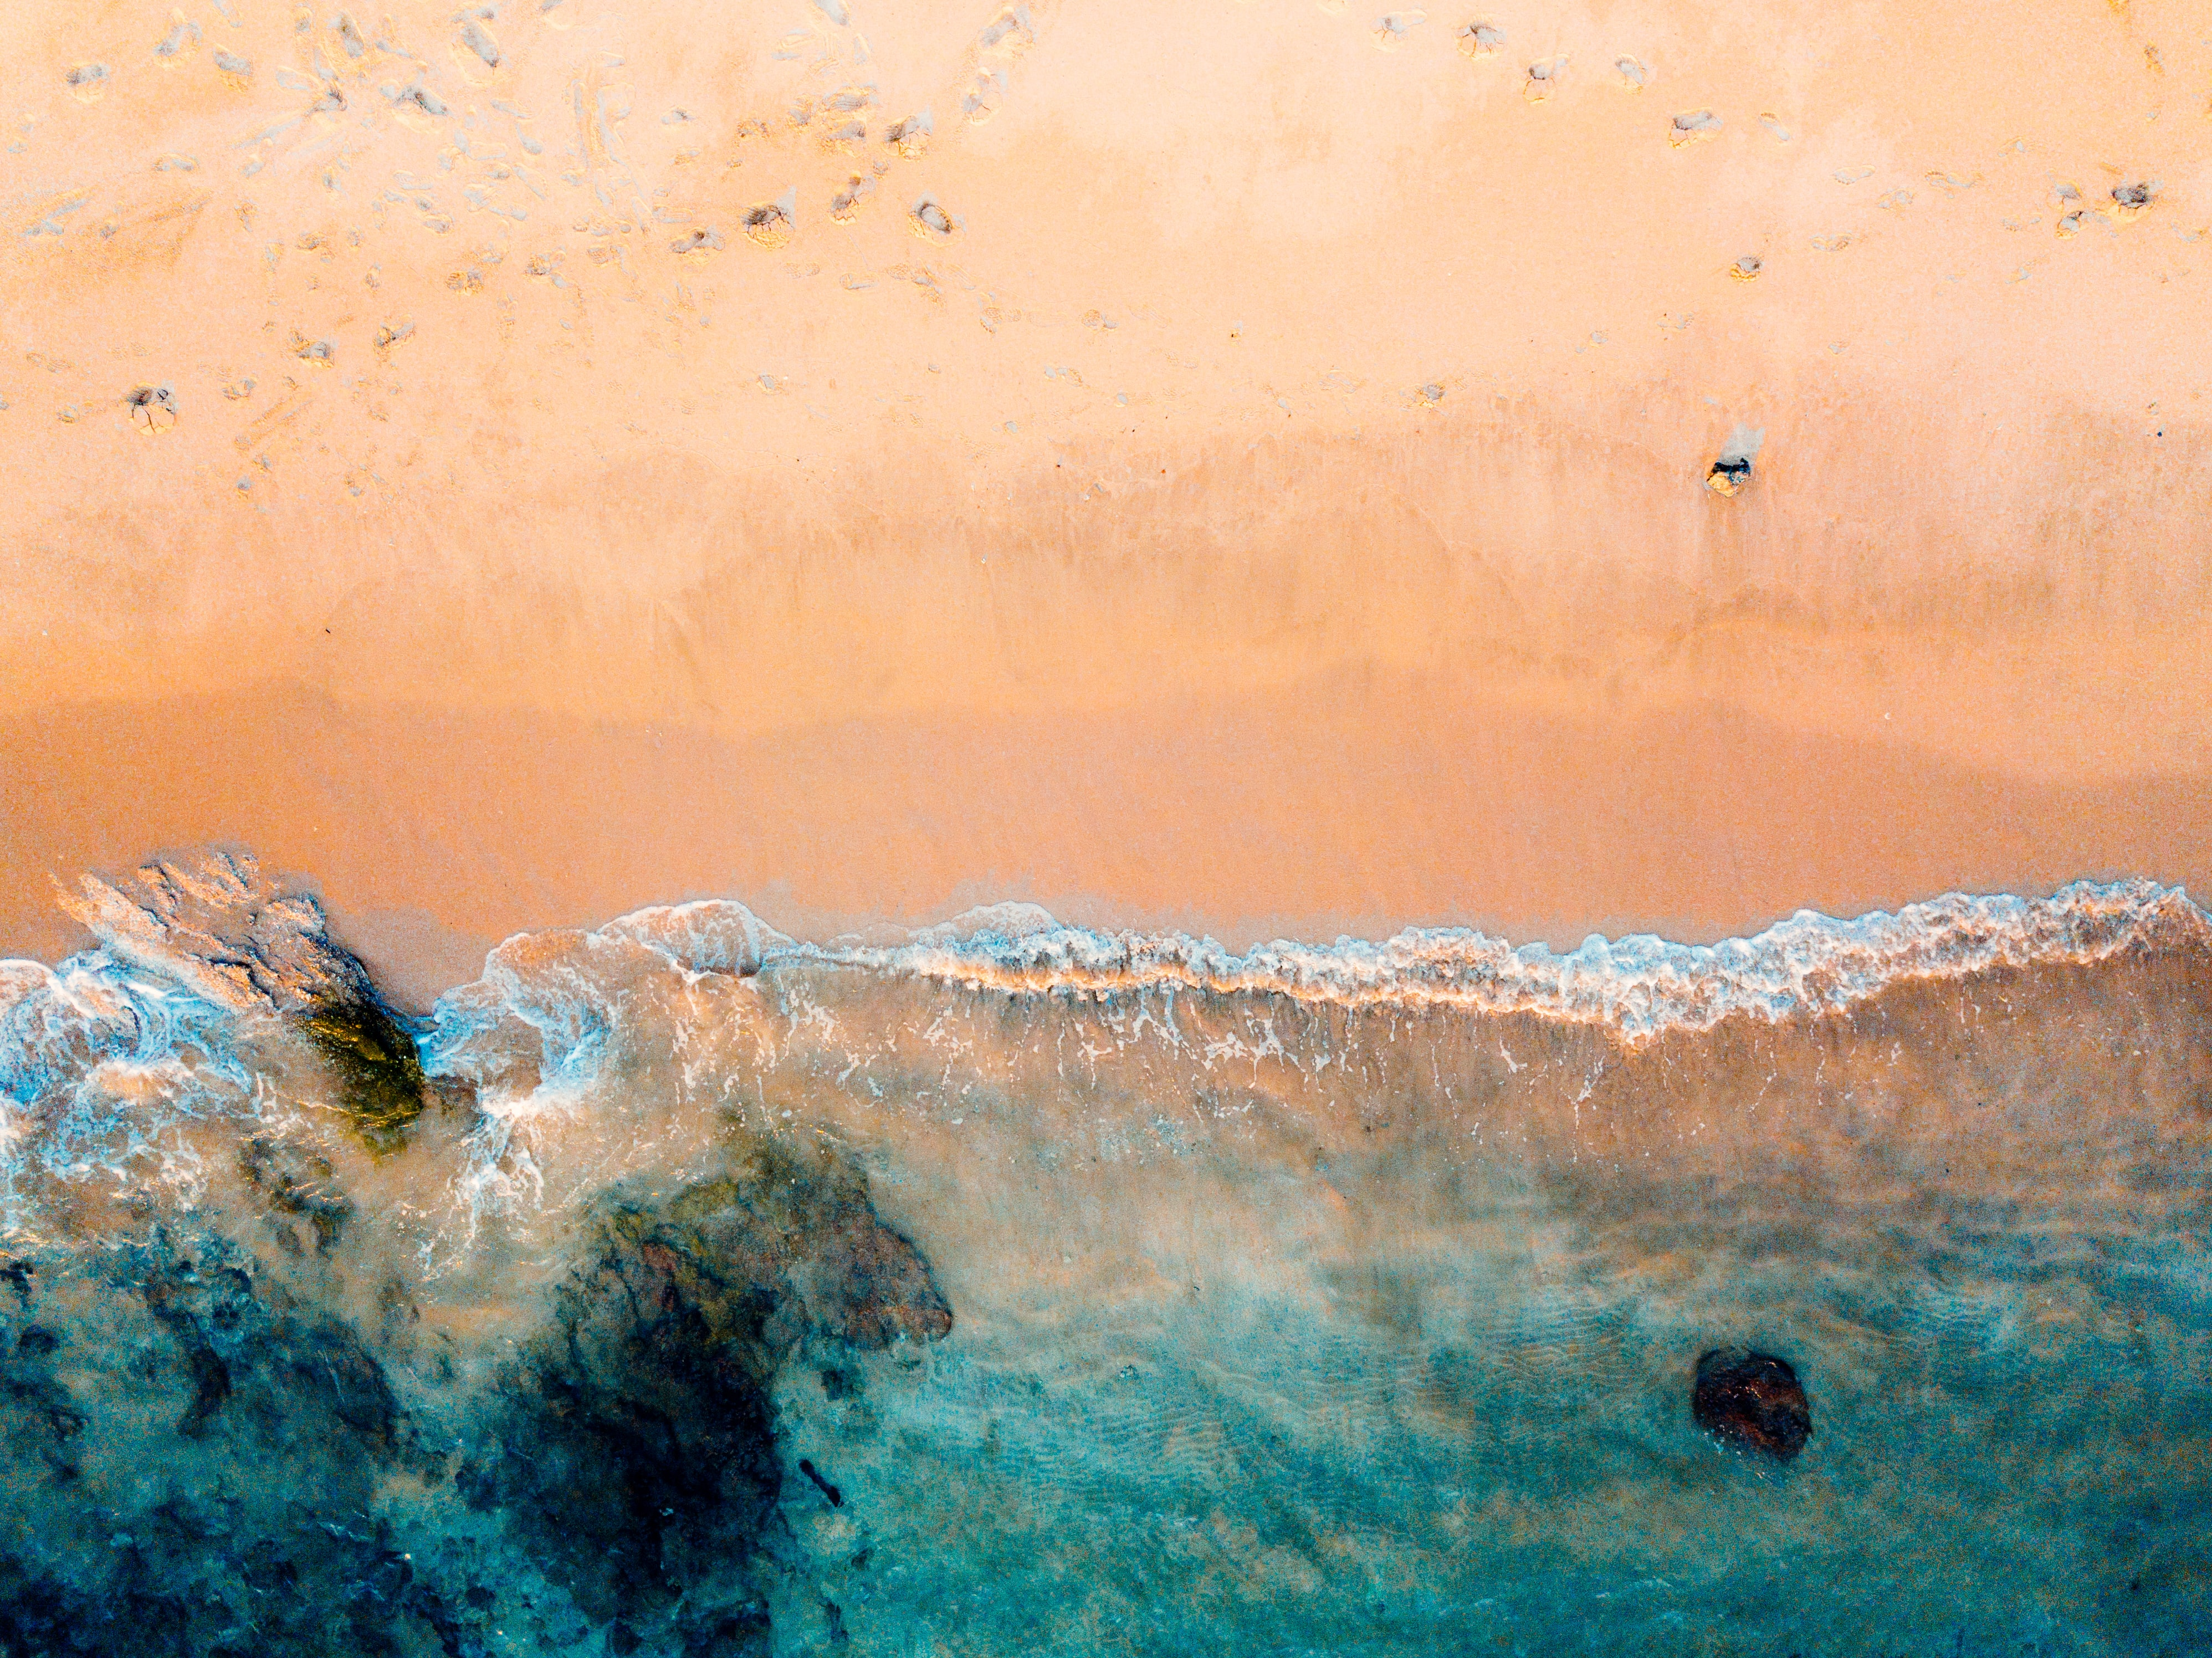 drone shot of beach and body of water on brown sand